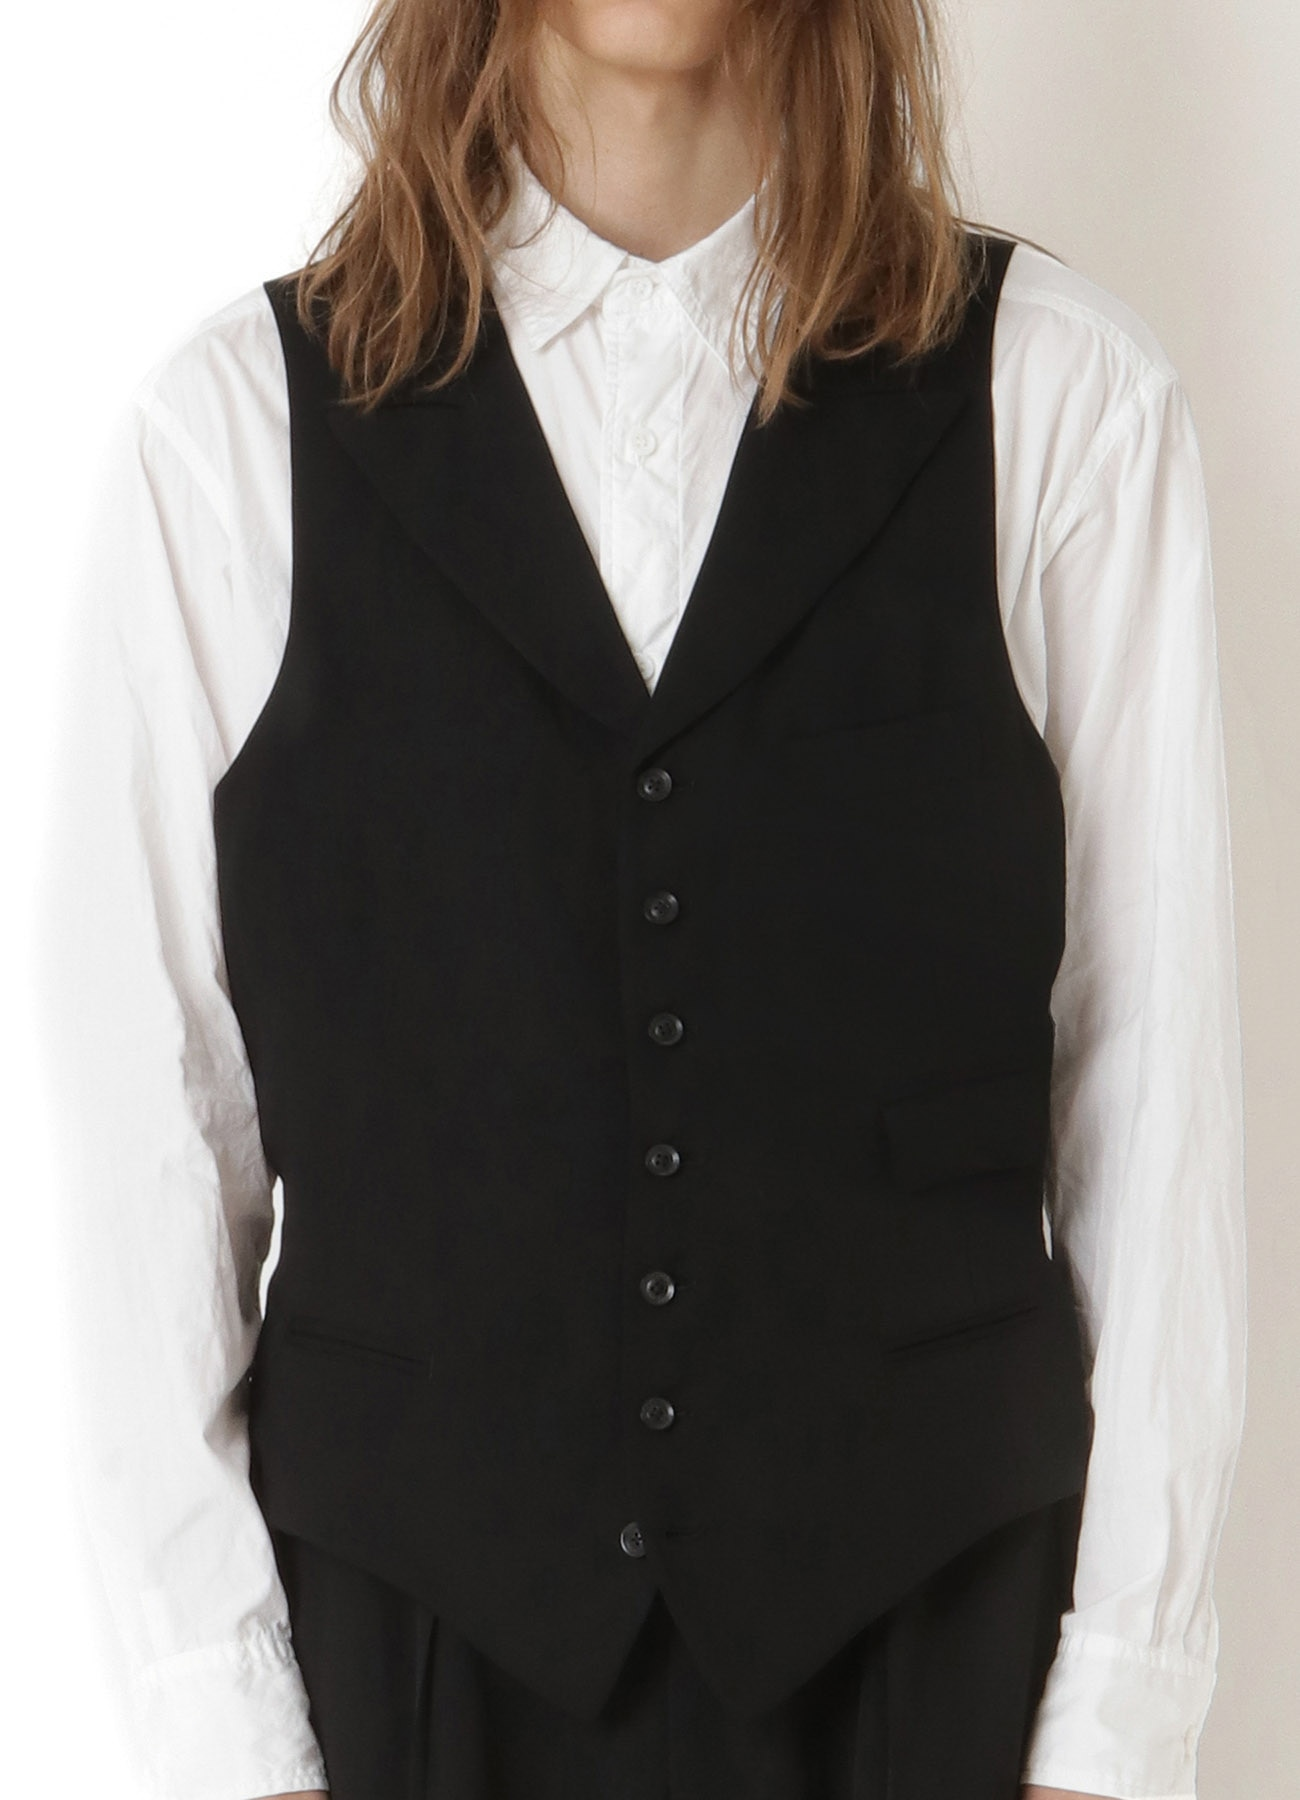 REGULATION TENCEL BURBERRY 7BUTTON SINGLE PEAKED LAPEL VEST